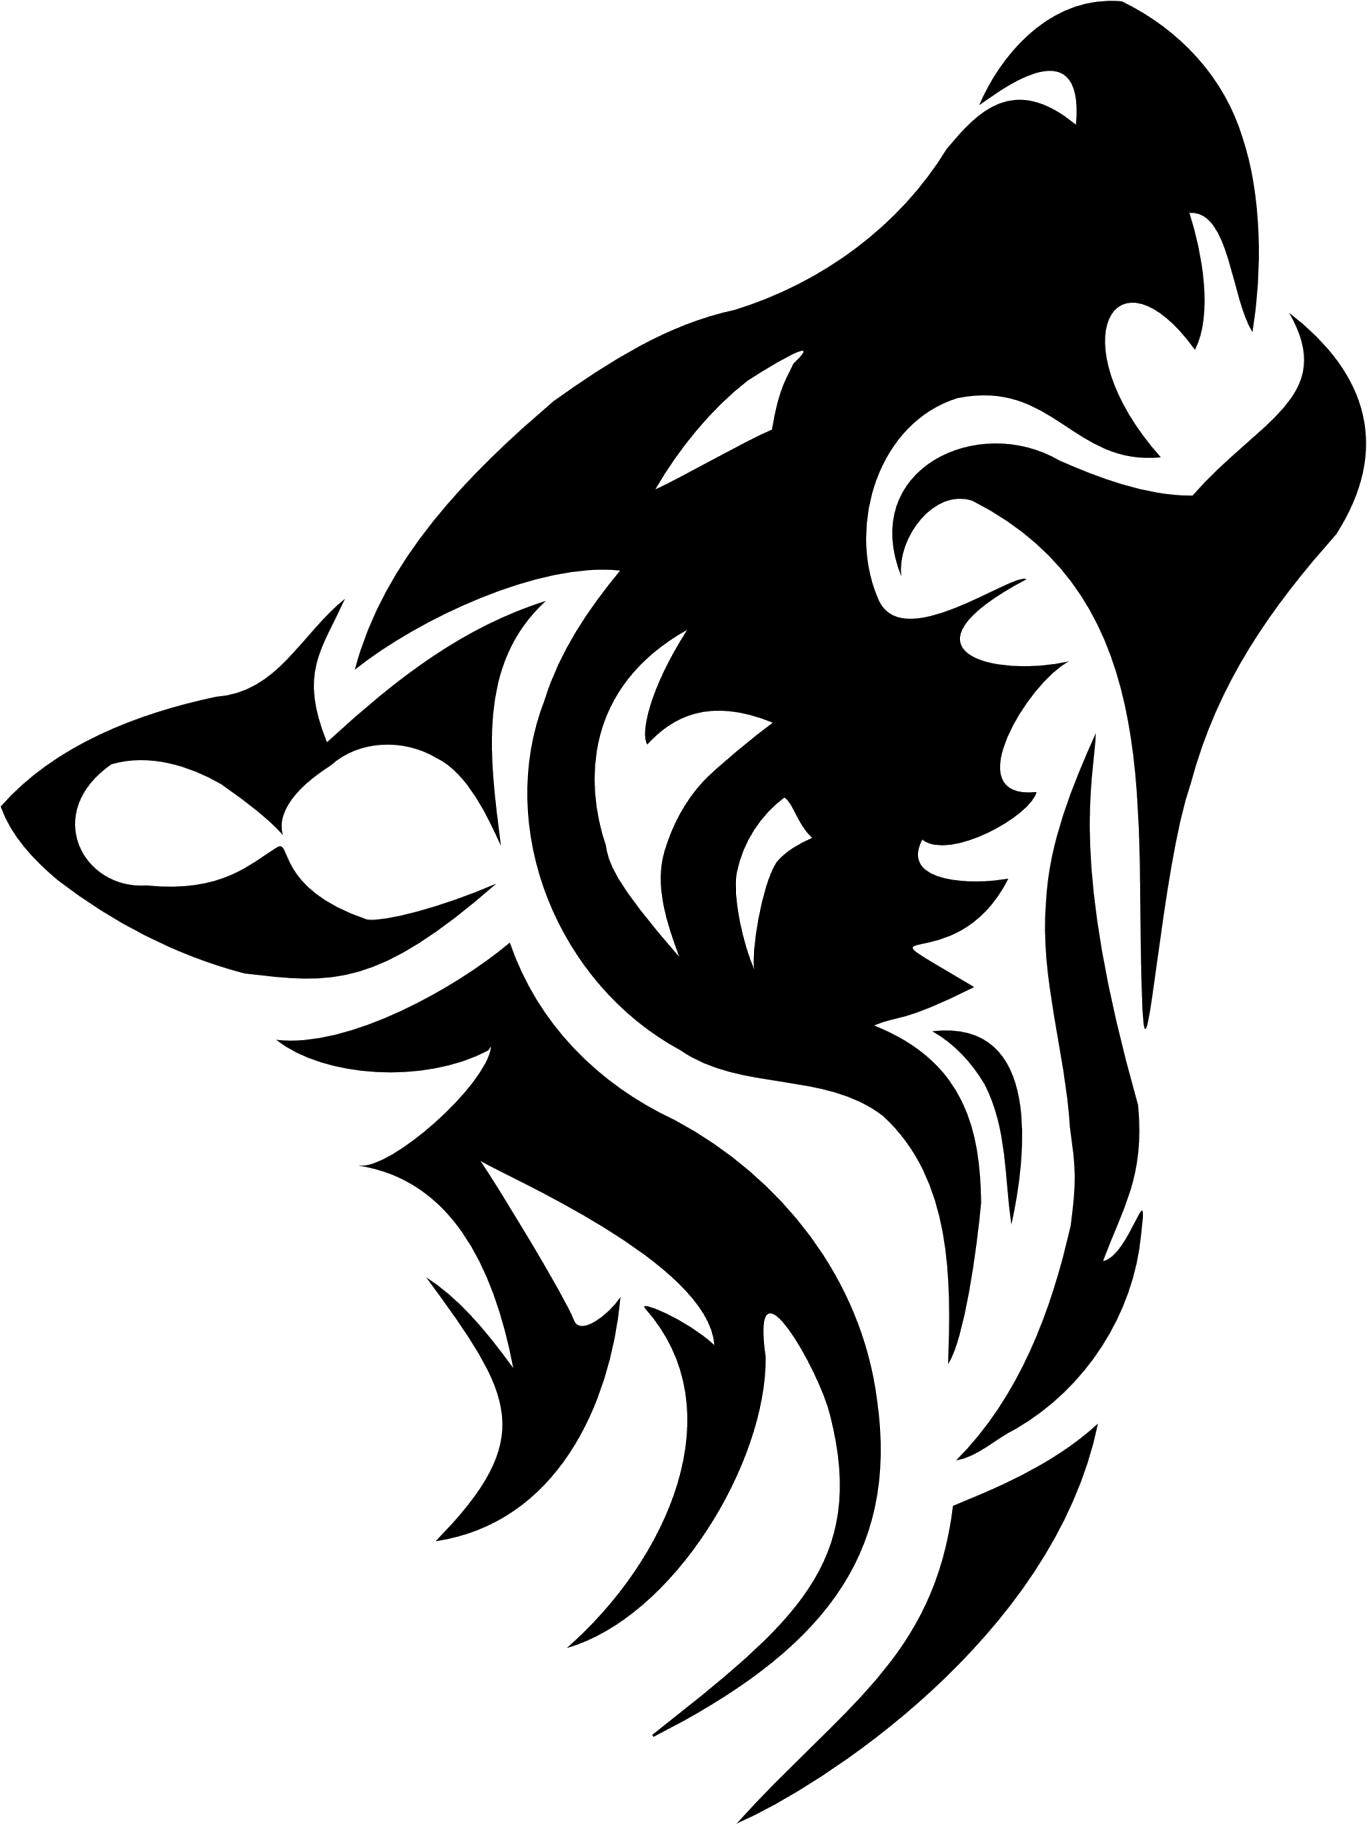 Tattoo wolf PNG image